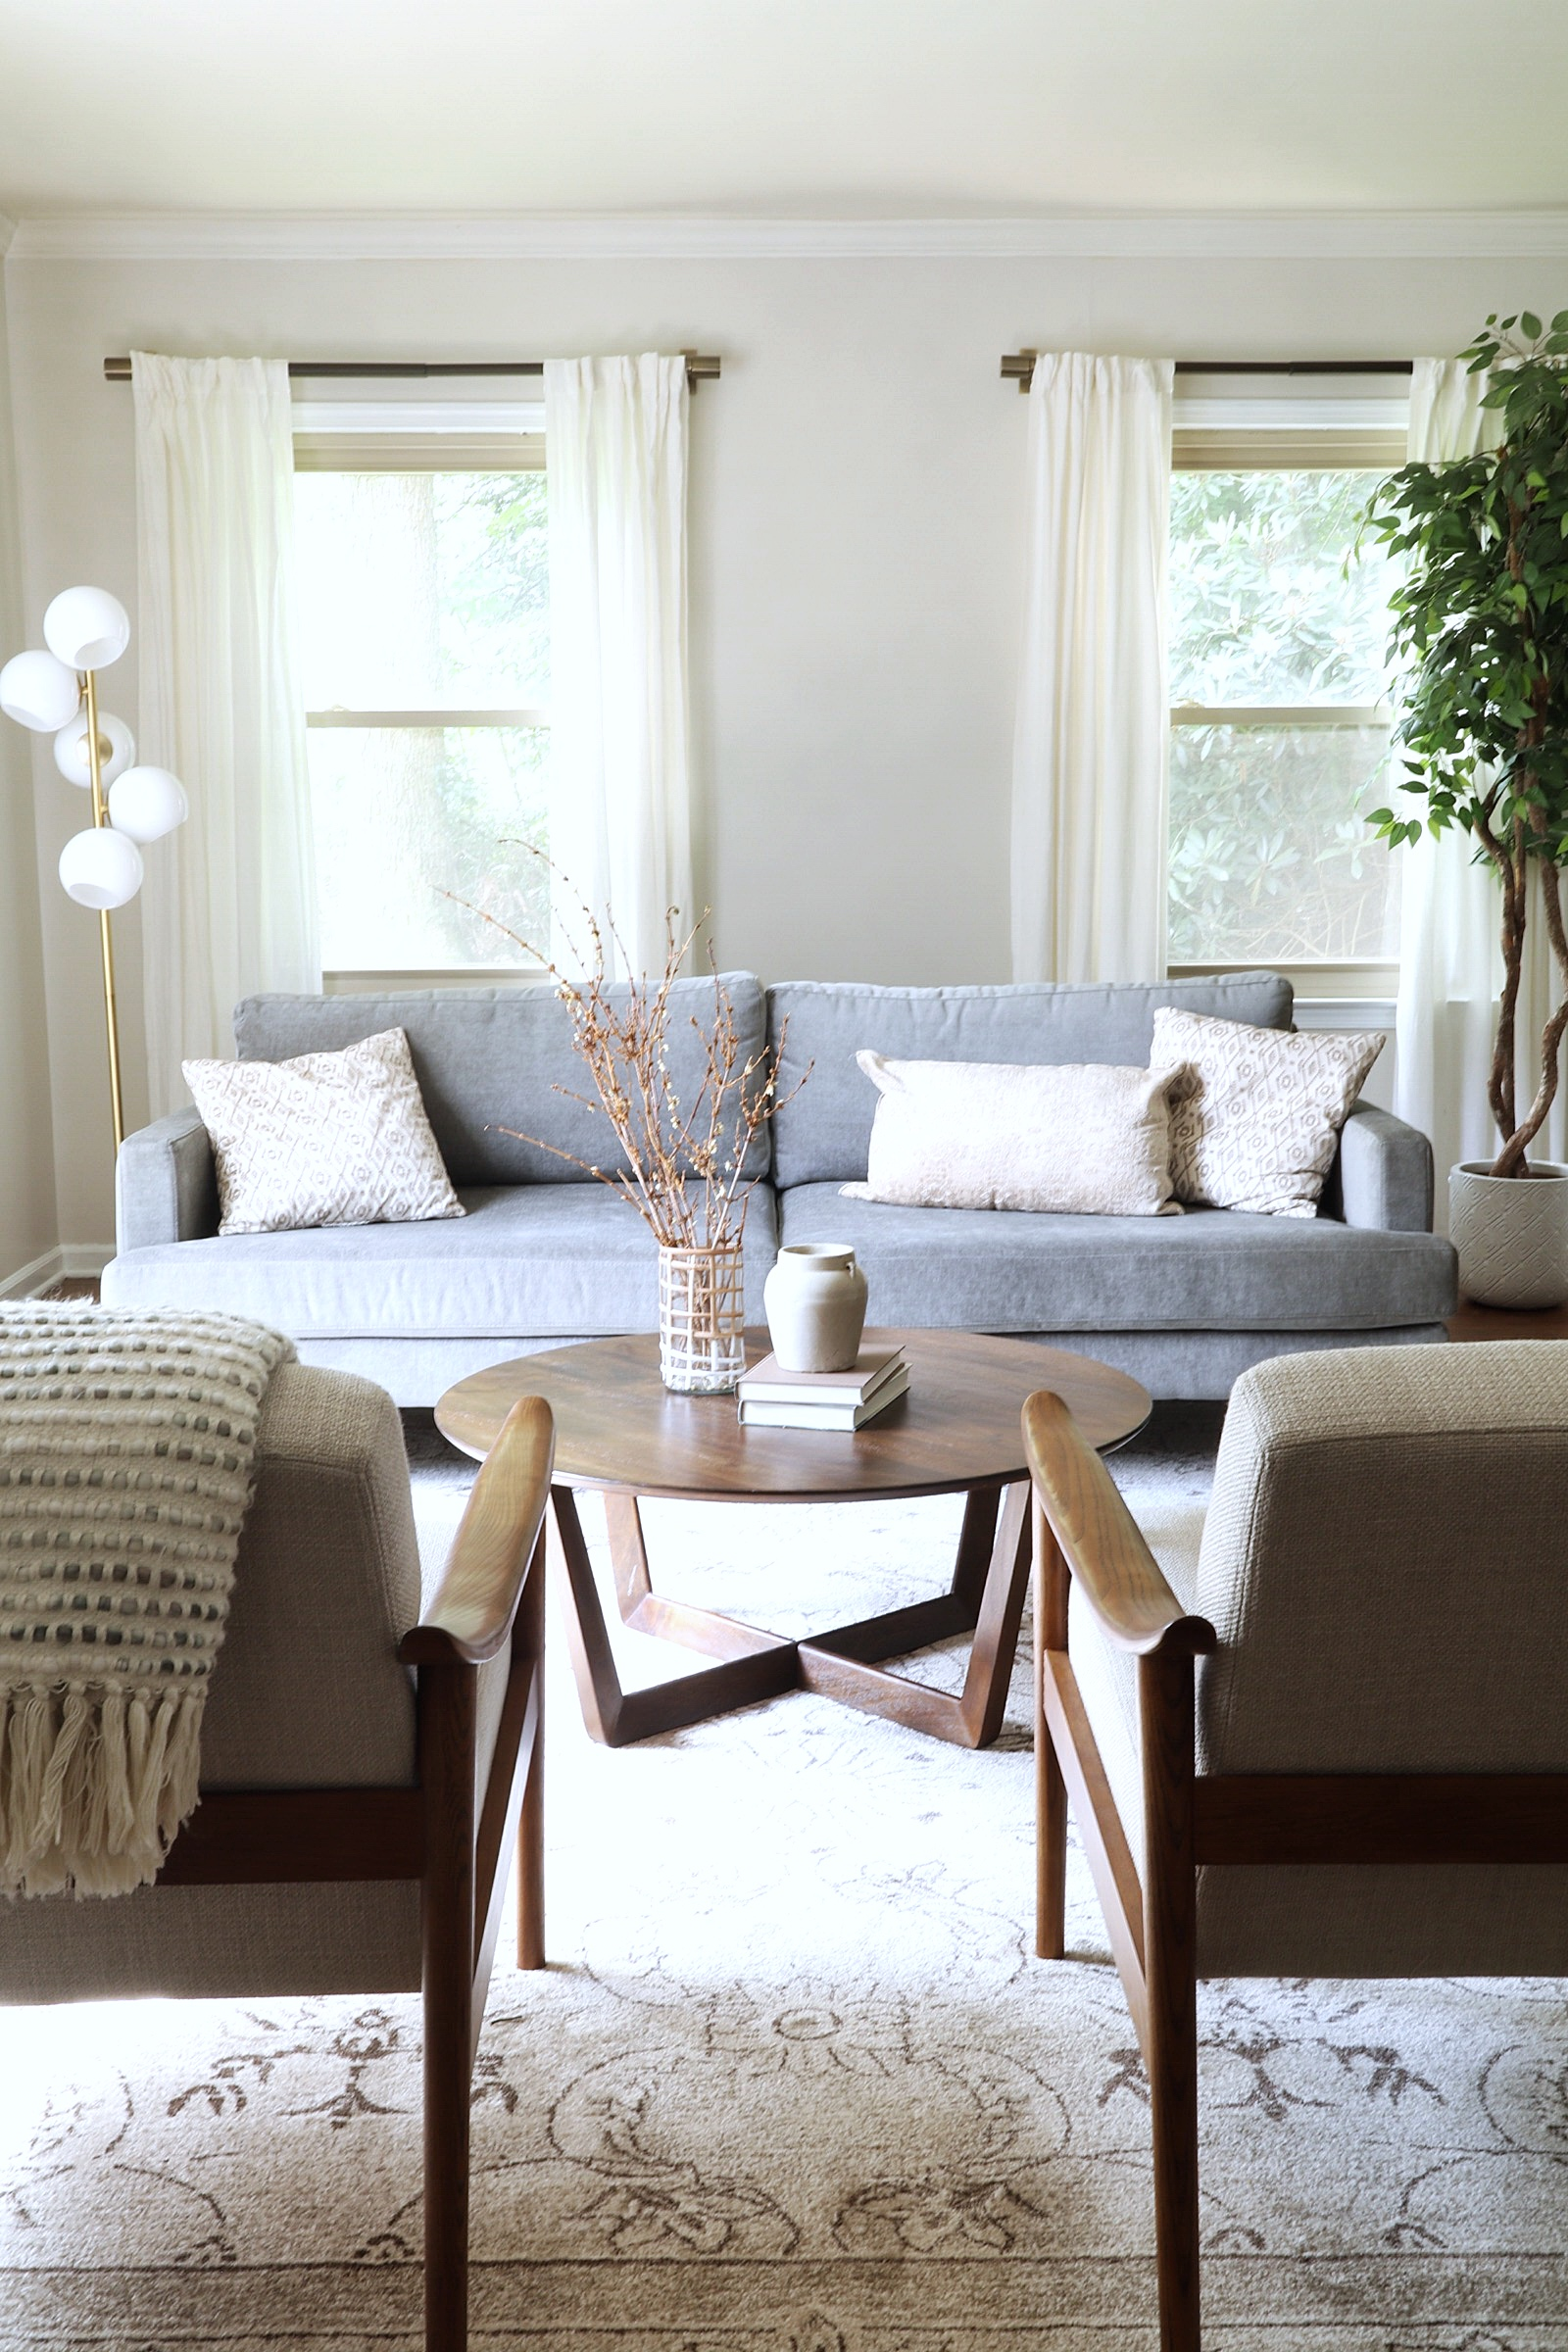 How To Layout Furniture In Your Narrow Living Room Or